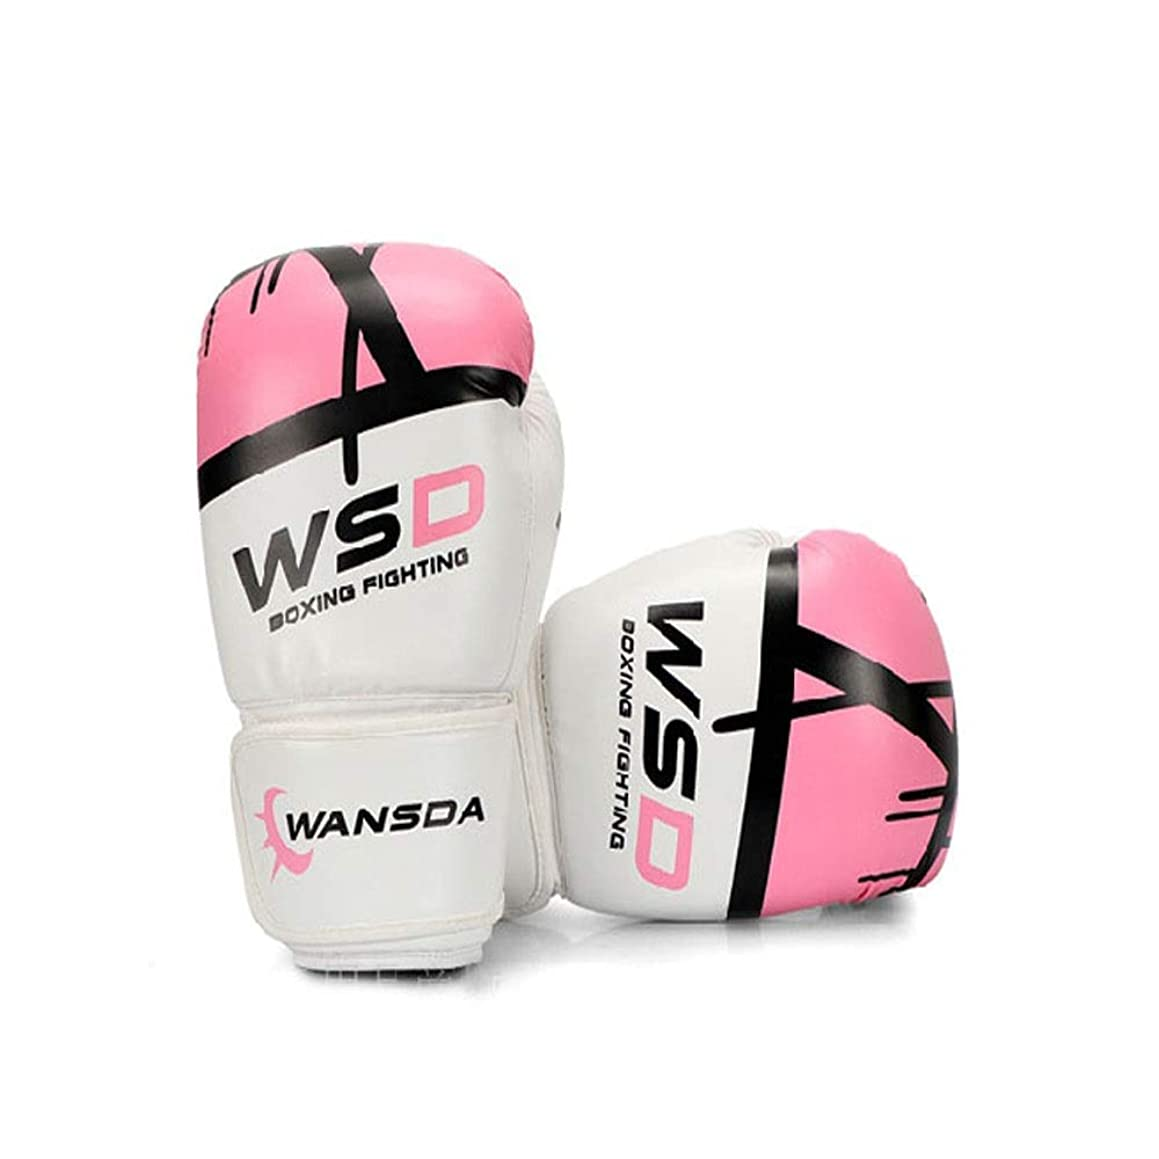 HUIJUNWENTI Children's Boxing Gloves, Muay Thai Fight Fighting Sanda Boxing Gloves, Sandbag Gloves Training Gloves, The Best Gift for Boxing Enthusiasts